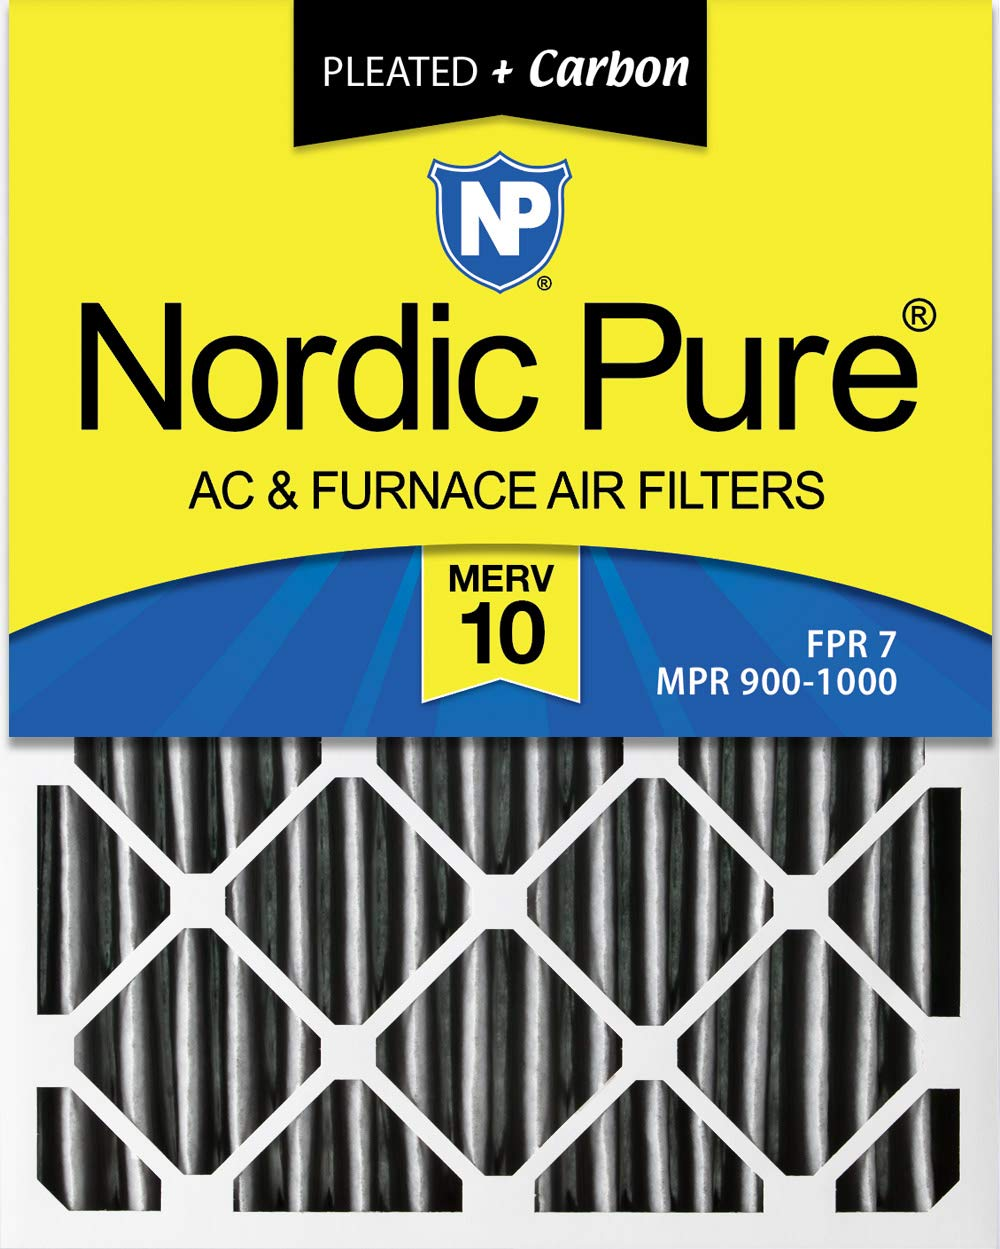 Nordic Pure 16x25x4 (3-5/8 Actual Depth) Plus AC Furnace Air Filters, 6 PACK, MERV 10 Pleated + Carbon, 6 Piece